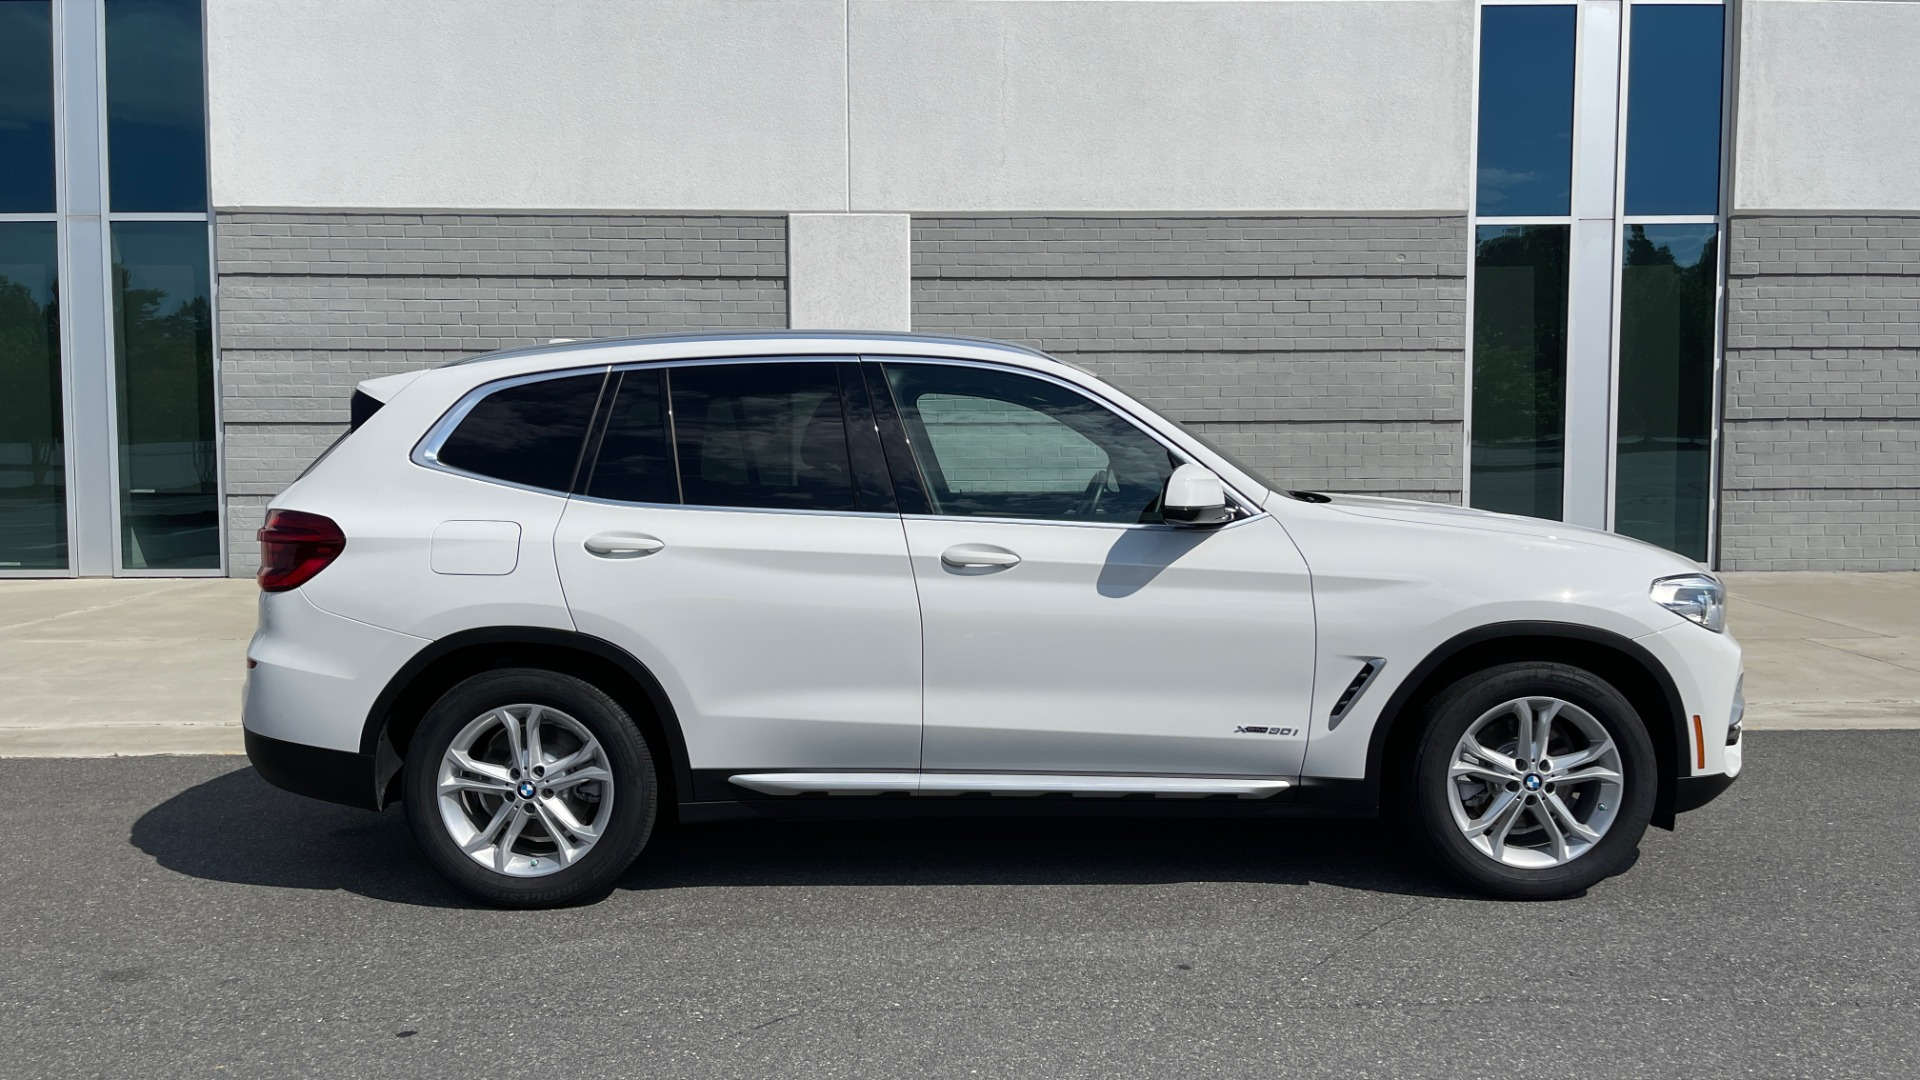 Used 2018 BMW X3 XDRIVE30I CONVENIENCE PKG / HEATED FRONT SEATS / REARVIEW for sale $36,595 at Formula Imports in Charlotte NC 28227 7